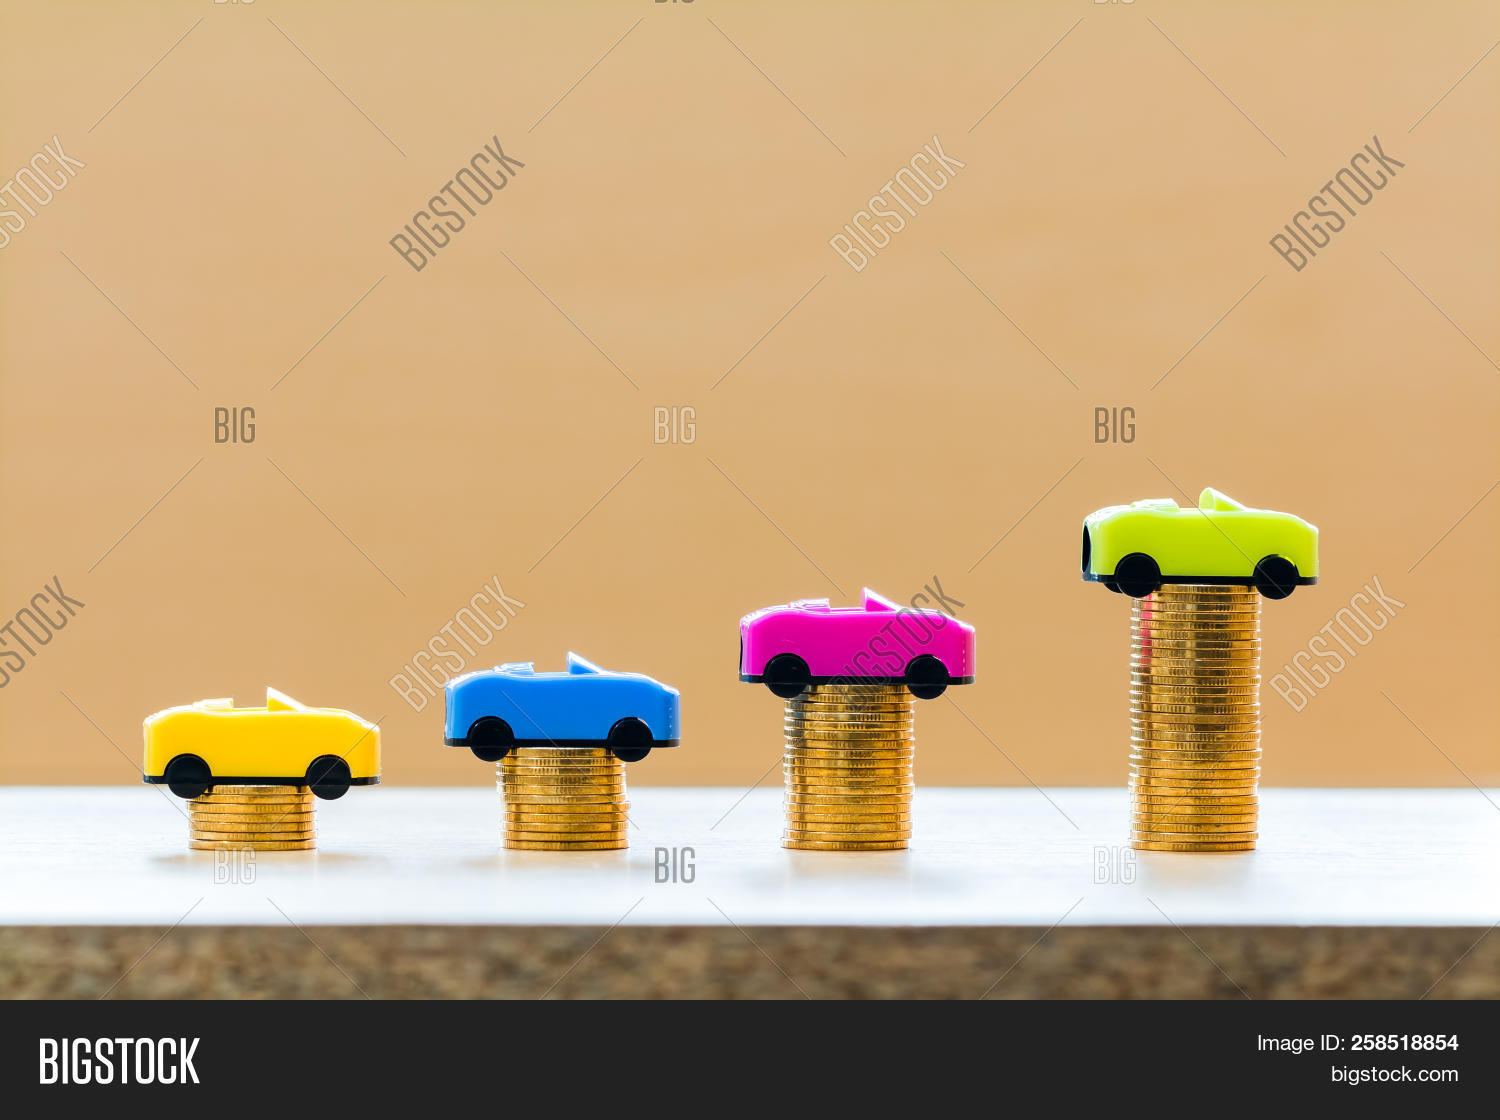 agent,asset,automobile,bag,bank,benefit,business,buy,car,chattel,collect,contract,debt,development,donate,earn,economy,express,family,finance,first,fund,give,growing,income,invest,investment,jar,lend,loan,money,mortgage,new,owner,payment,plan,profit,progress,prosperity,purchase,realty,retirement,revenue,salary,saving,shift,success,tax,term,transfer